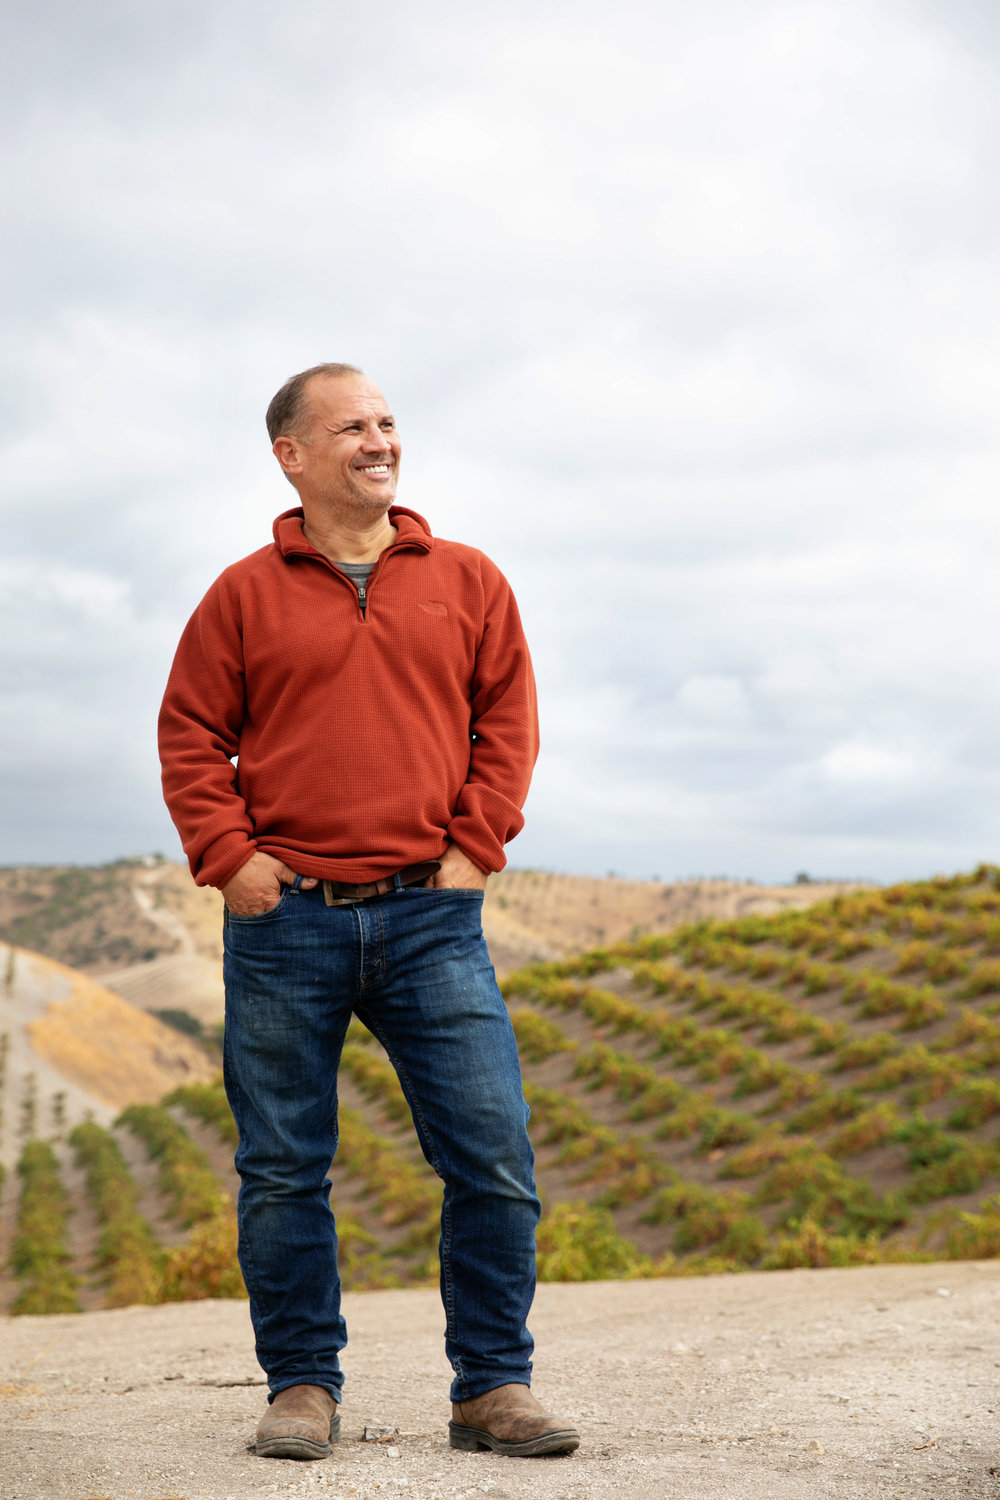 Peachy-Canyon-Robert-Henson-Winemaker-.jpg